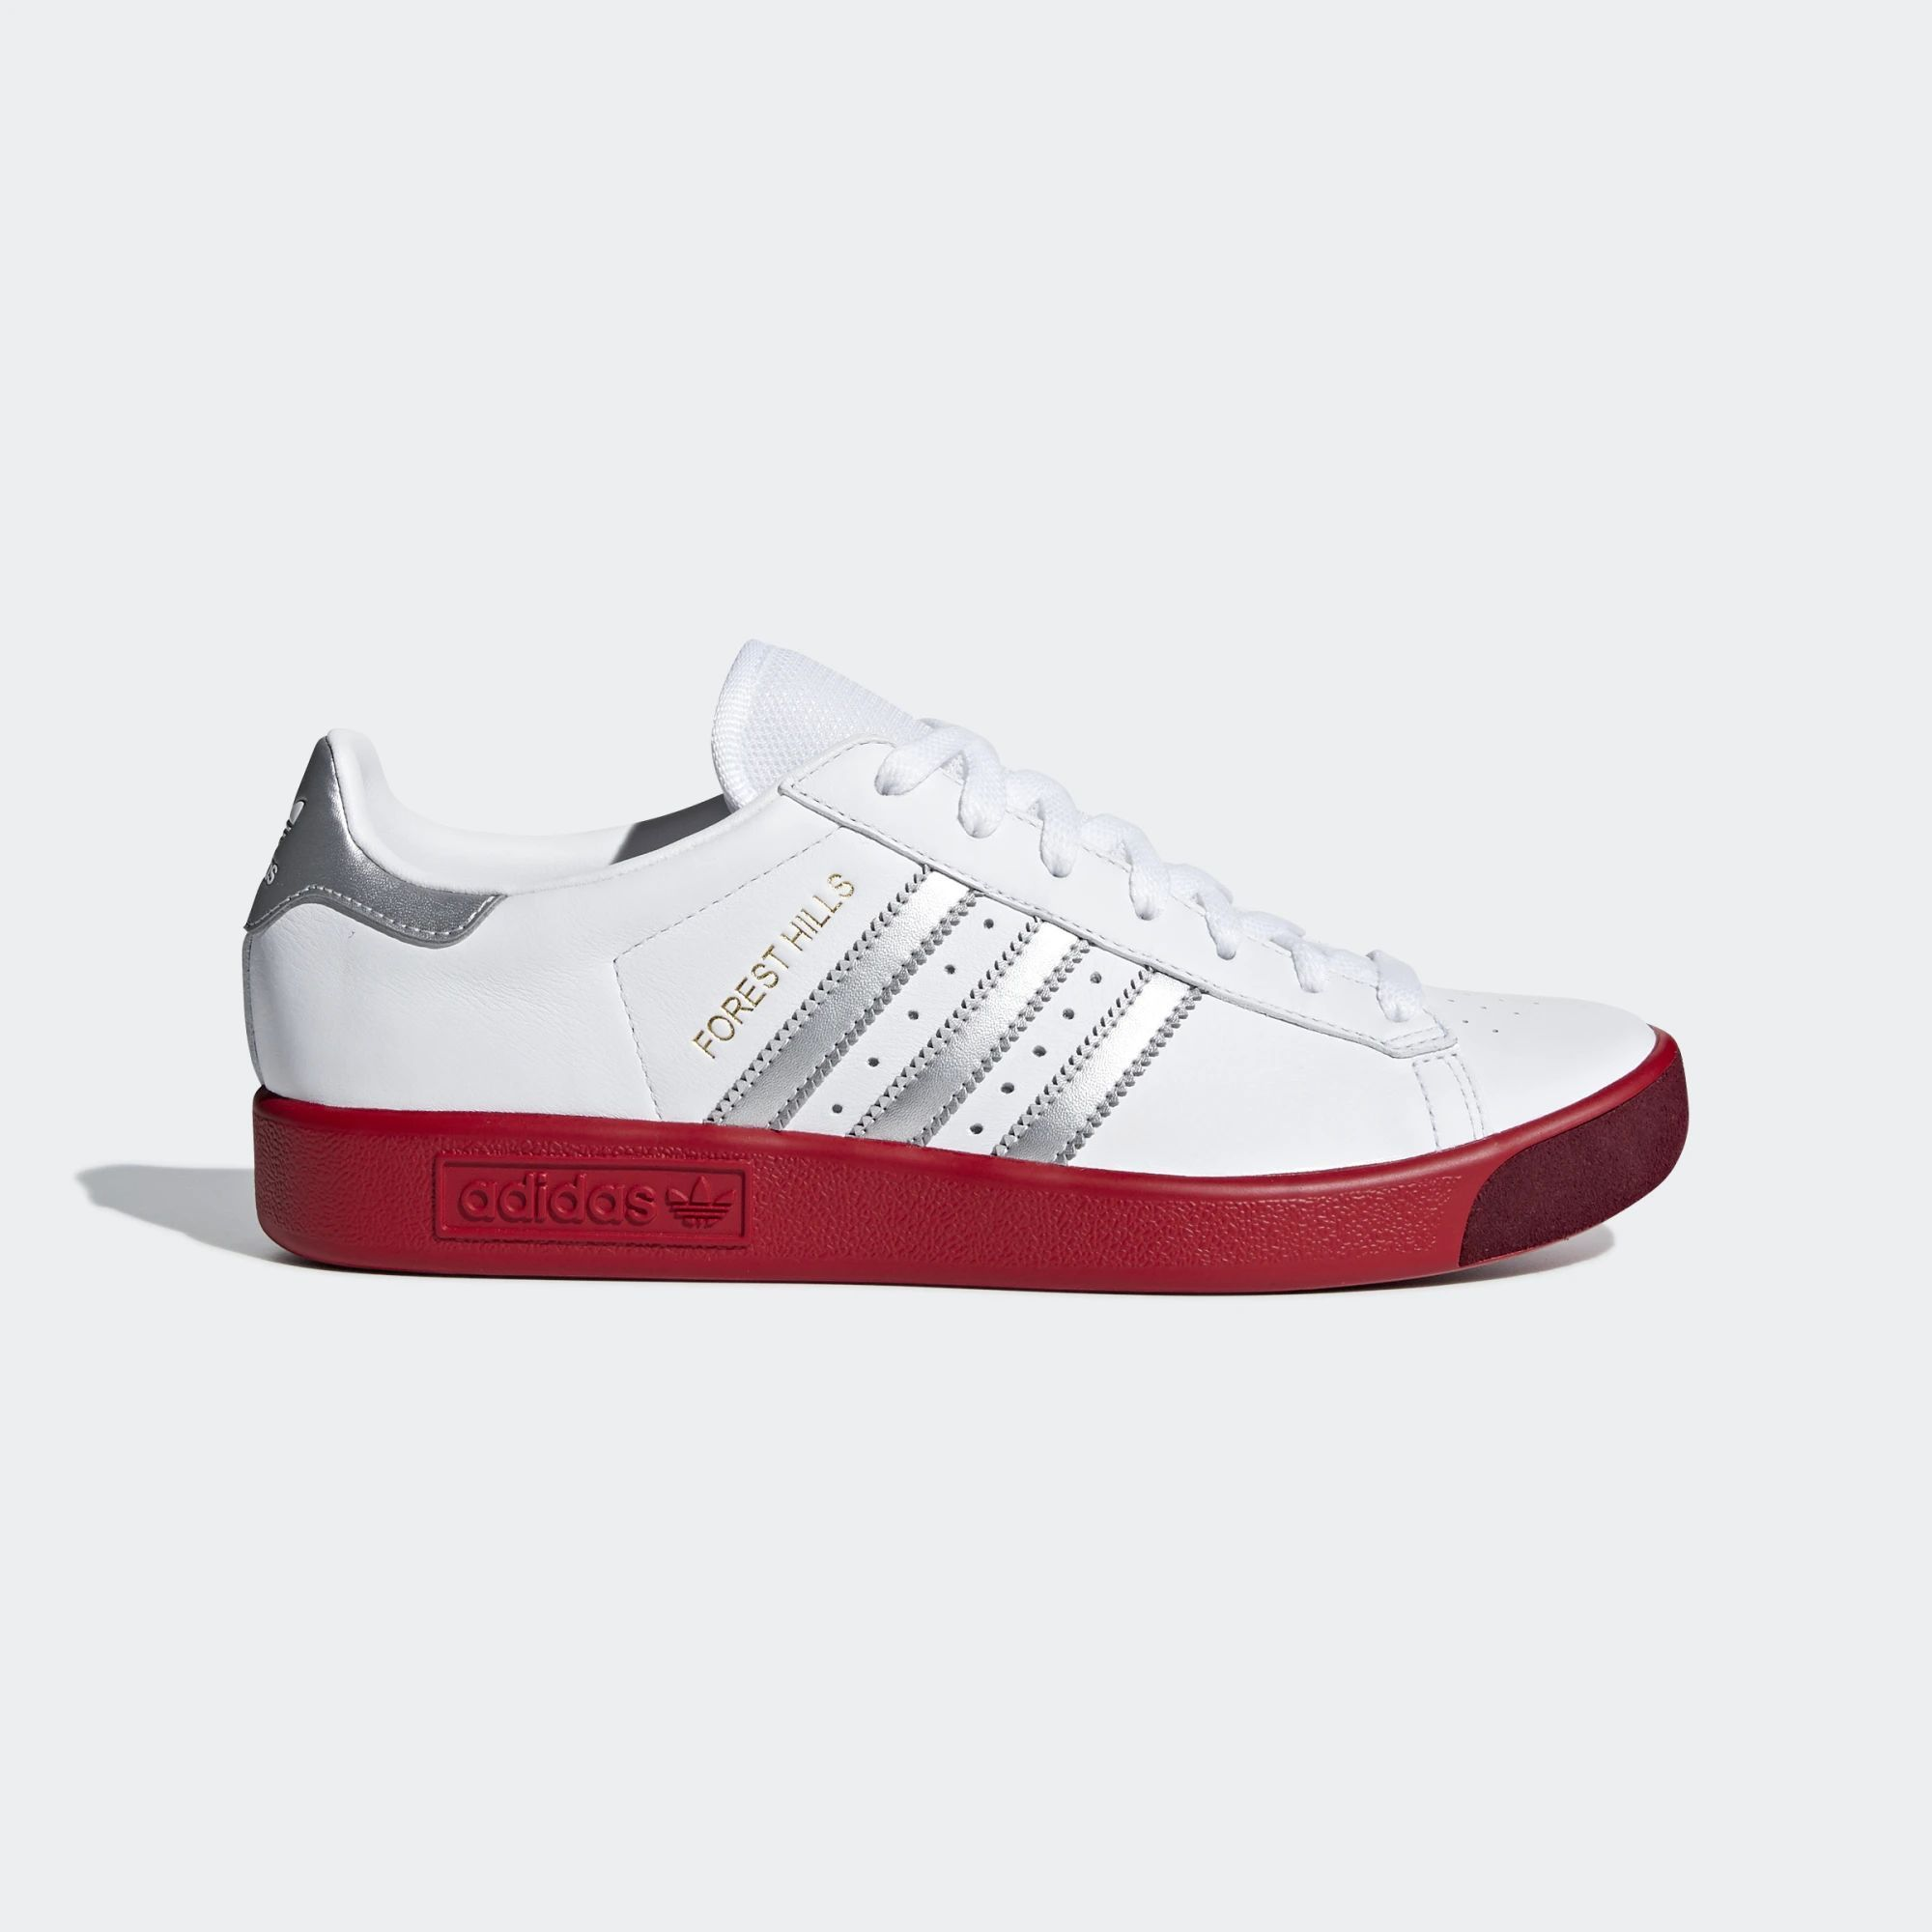 the best attitude 6cfe3 41095 Adidas Forest Hills Shoes - Ftwr White  Silver Met  Scarlet